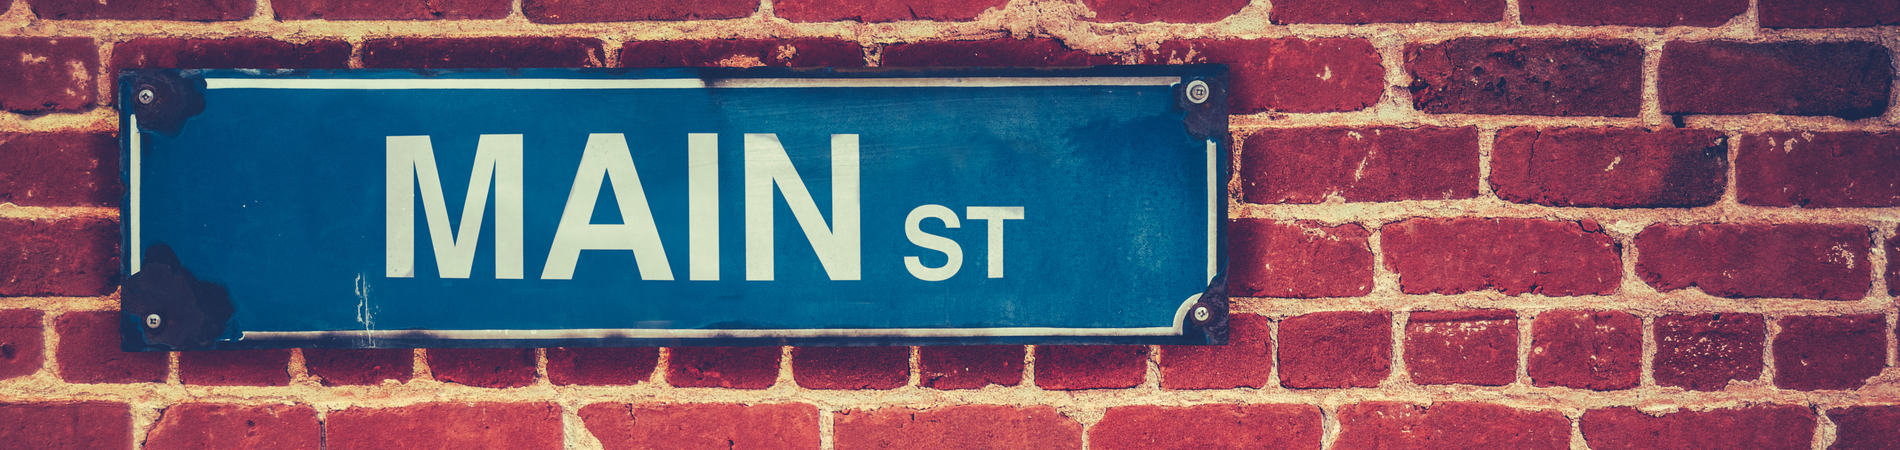 main_street_sign_on_brick_wall